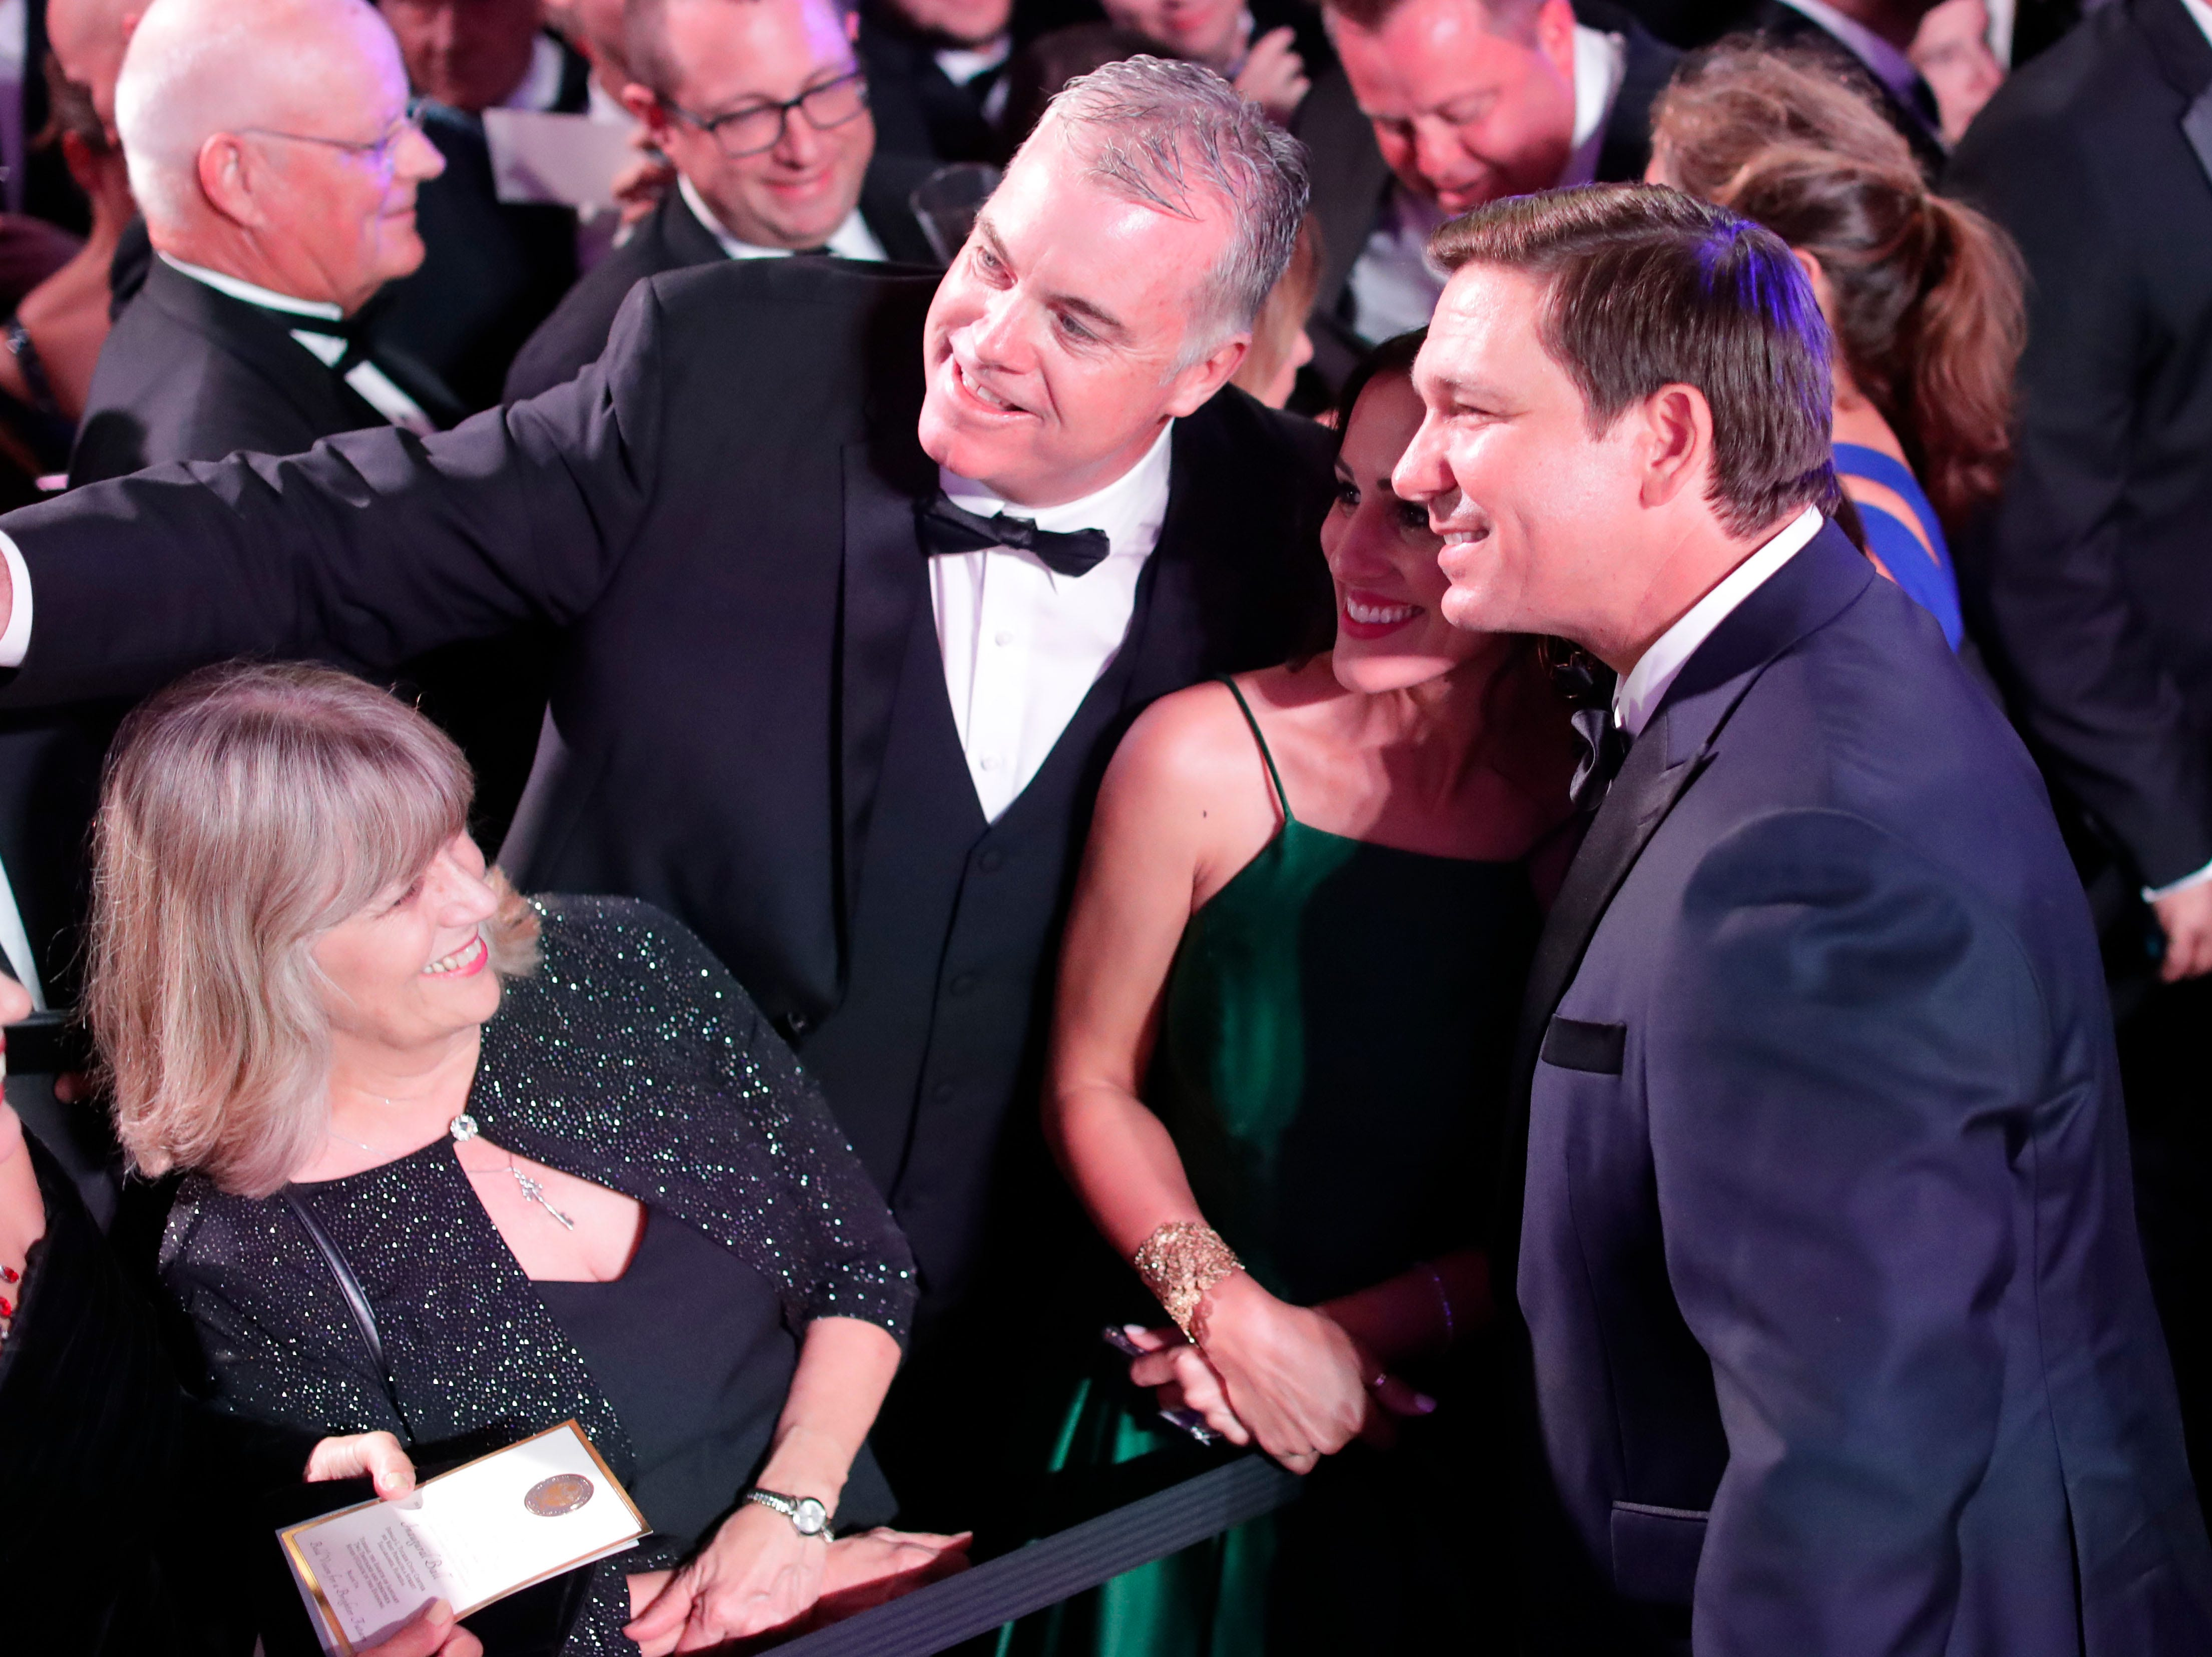 Hundreds of guests from all over Florida attend Florida's 46th Governor's Inaugural Ball at the Tucker Civic Center, Tuesday, Jan. 8, 2019. Gov. Ron DeSantis poses for a photo with guests.